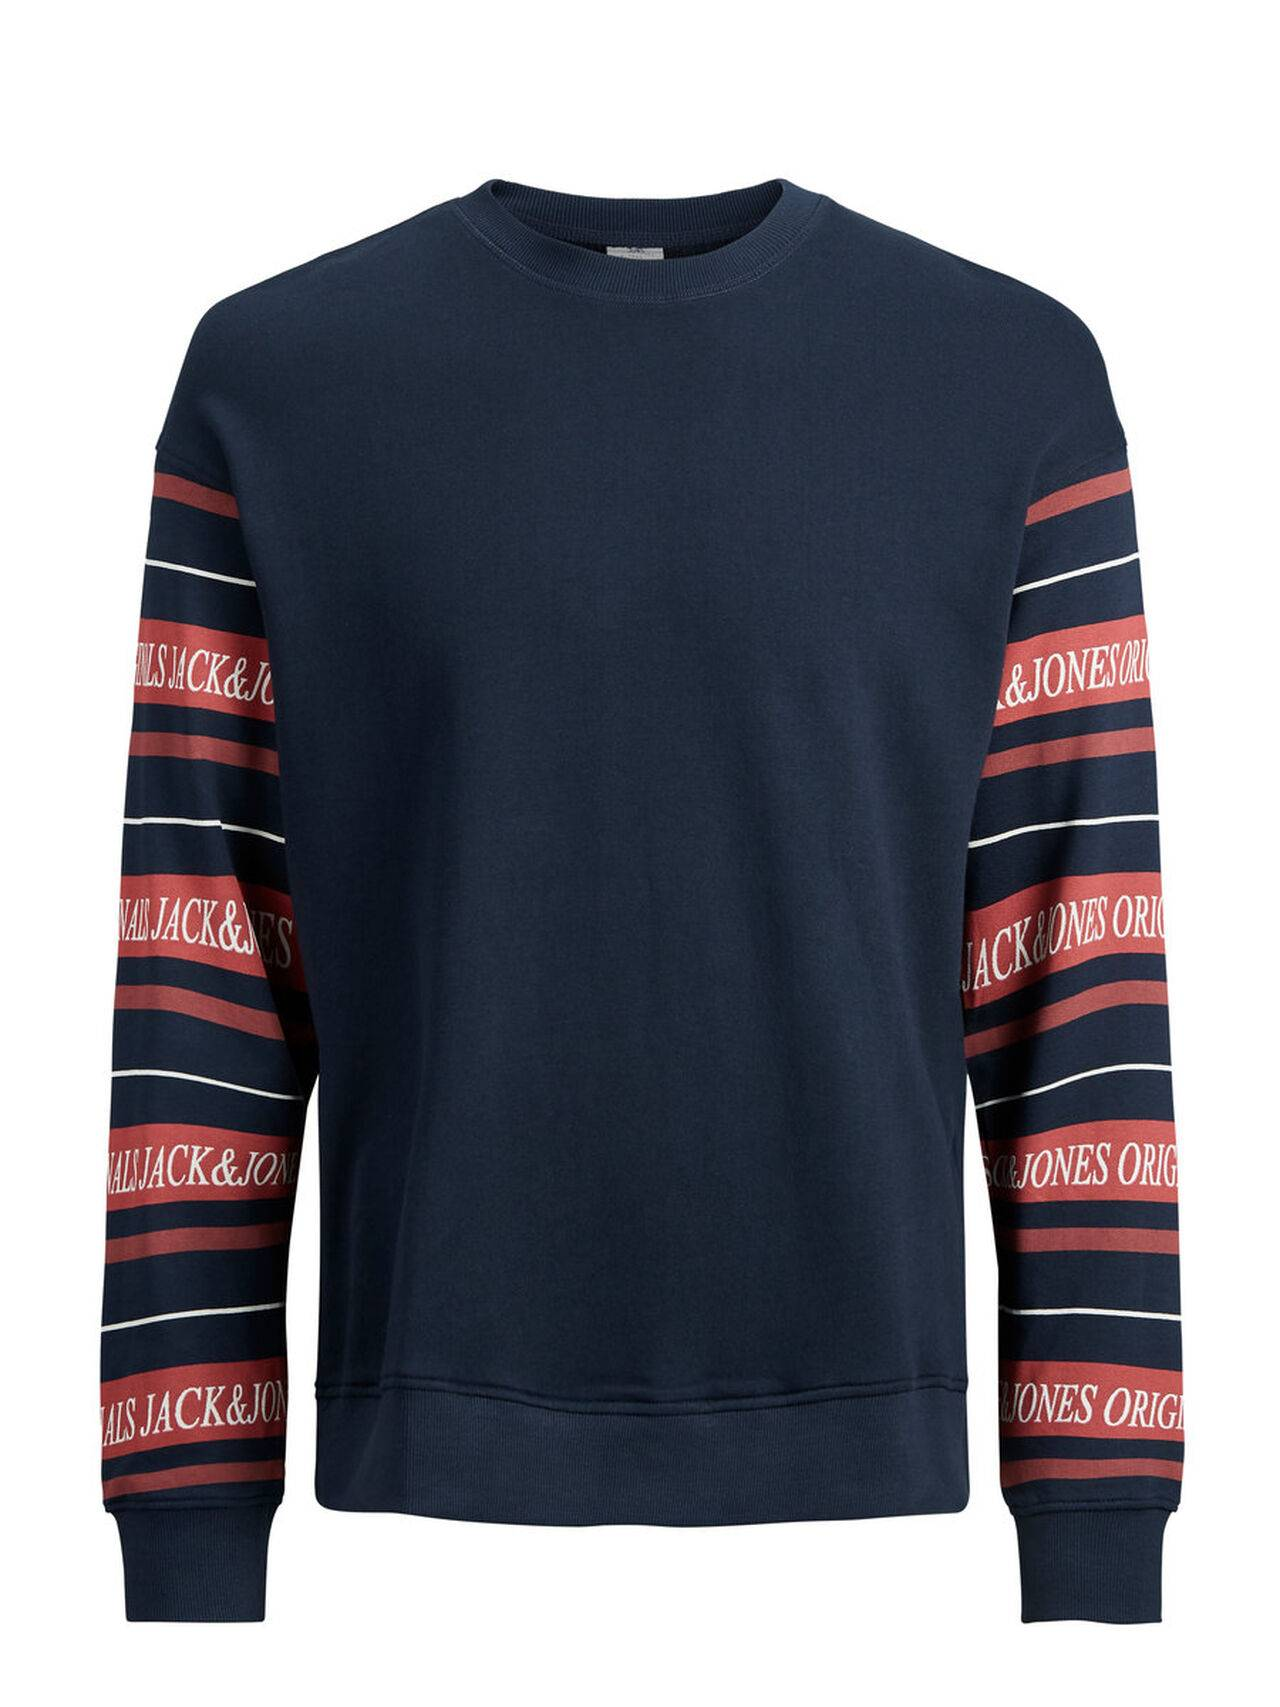 JACK & JONES Print Sweatshirt Men Blue TotalEclipse